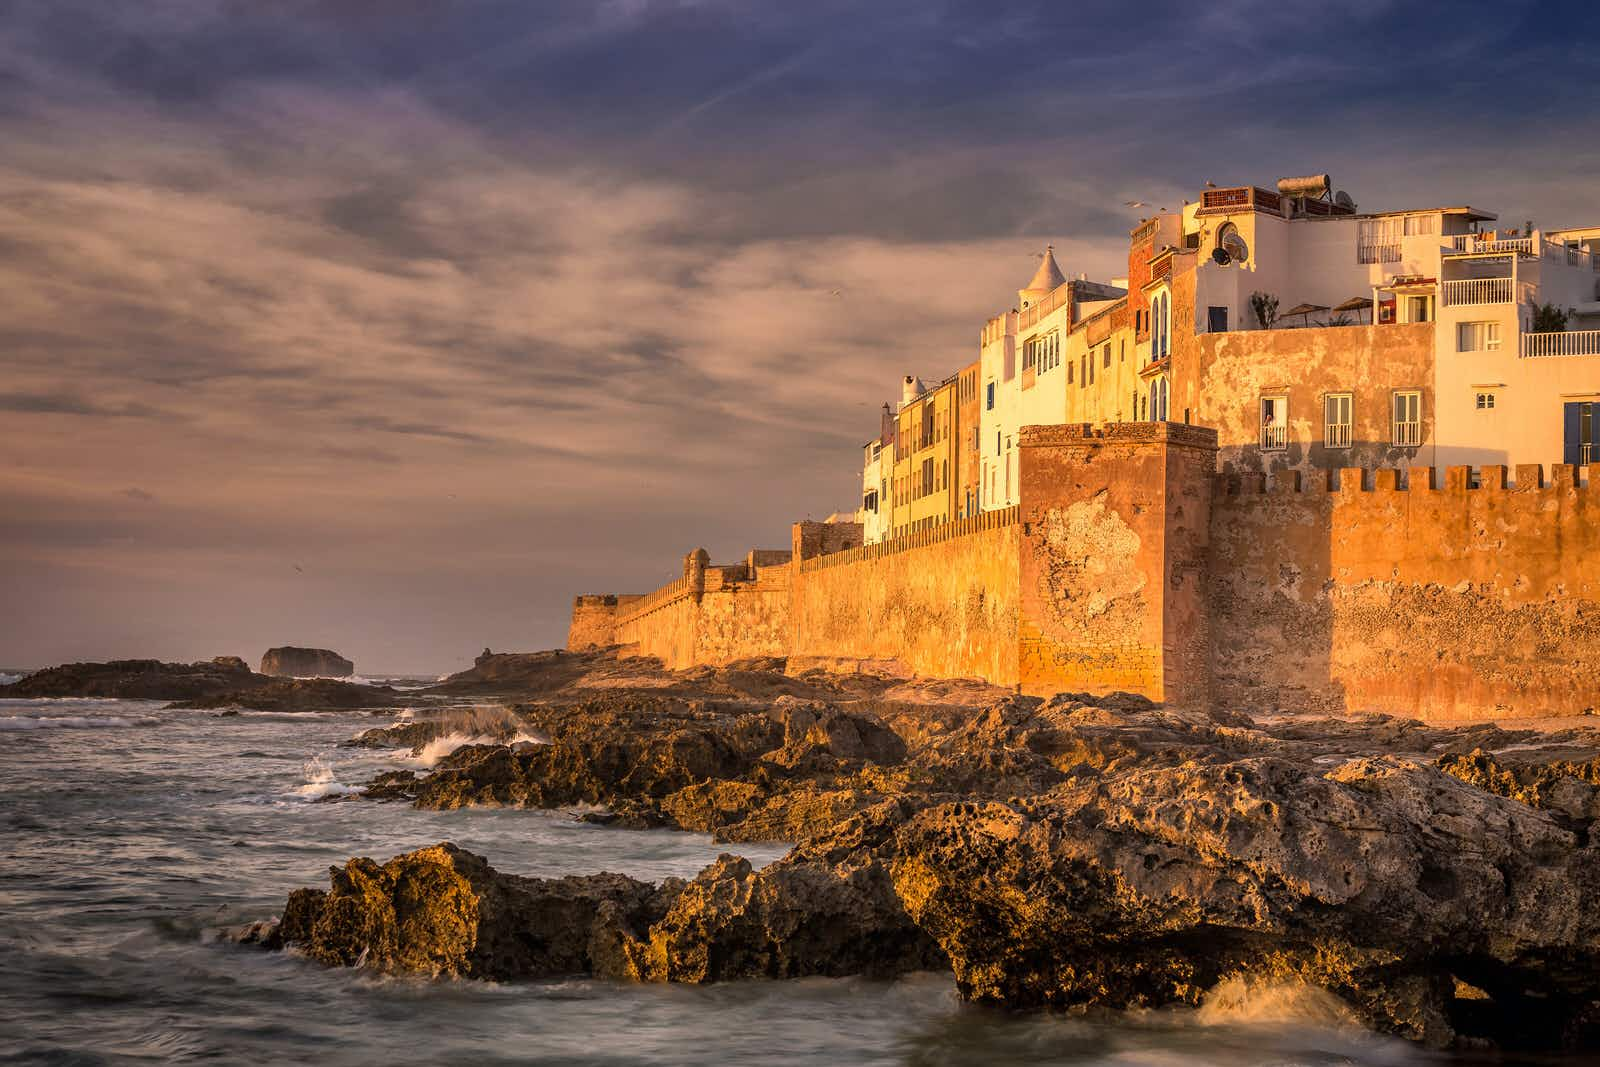 Essaouira on a budget: what to see and where to stay